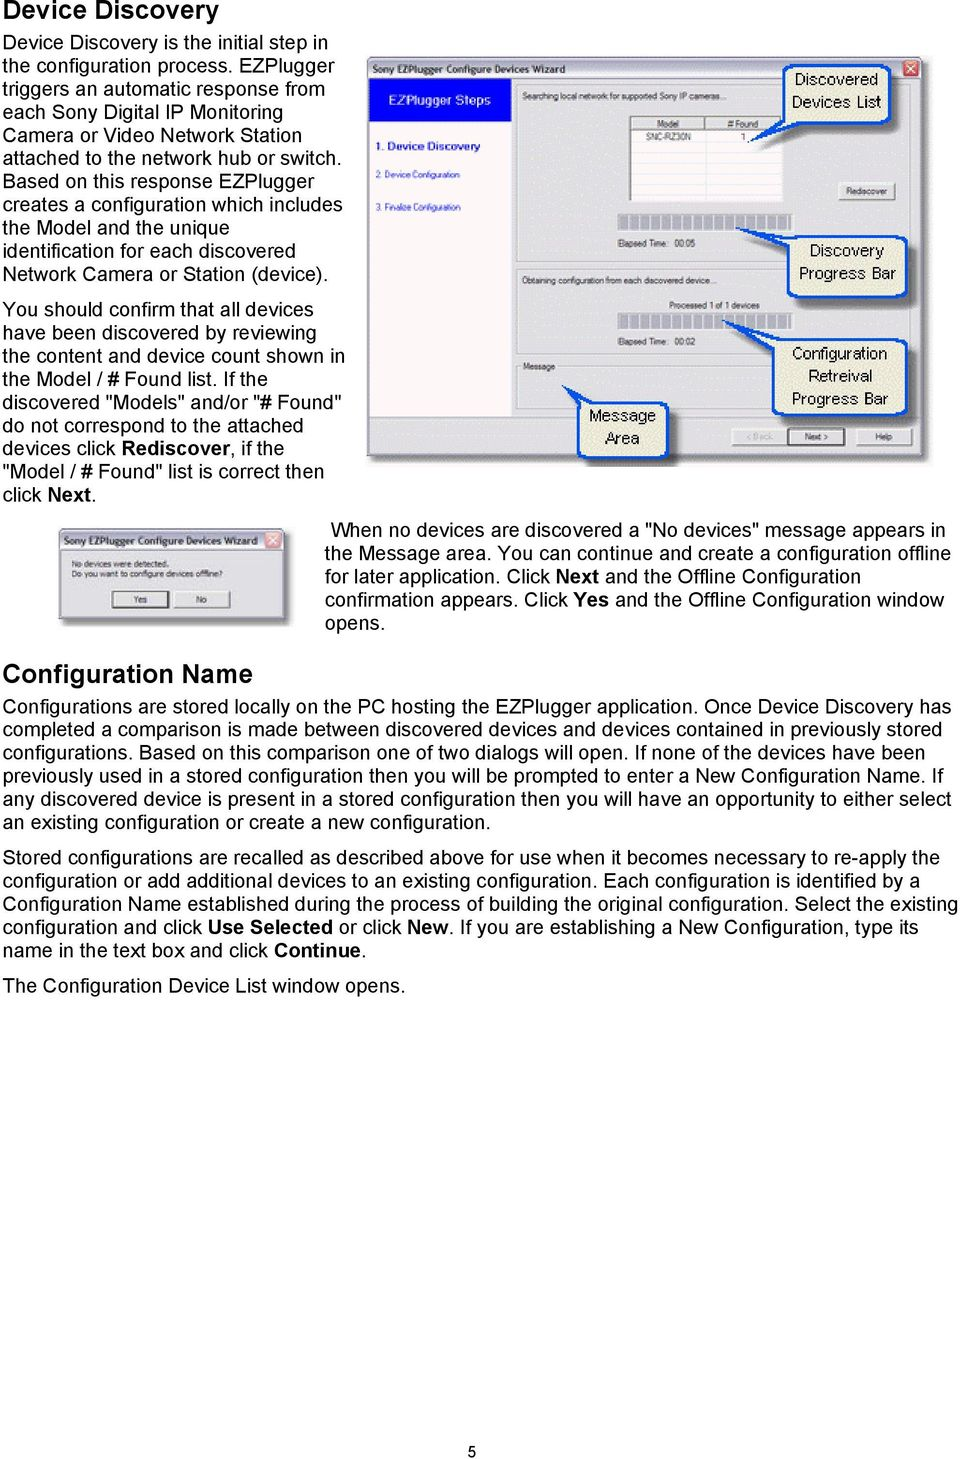 Based on this response EZPlugger creates a configuration which includes the Model and the unique identification for each discovered Network Camera or Station (device).